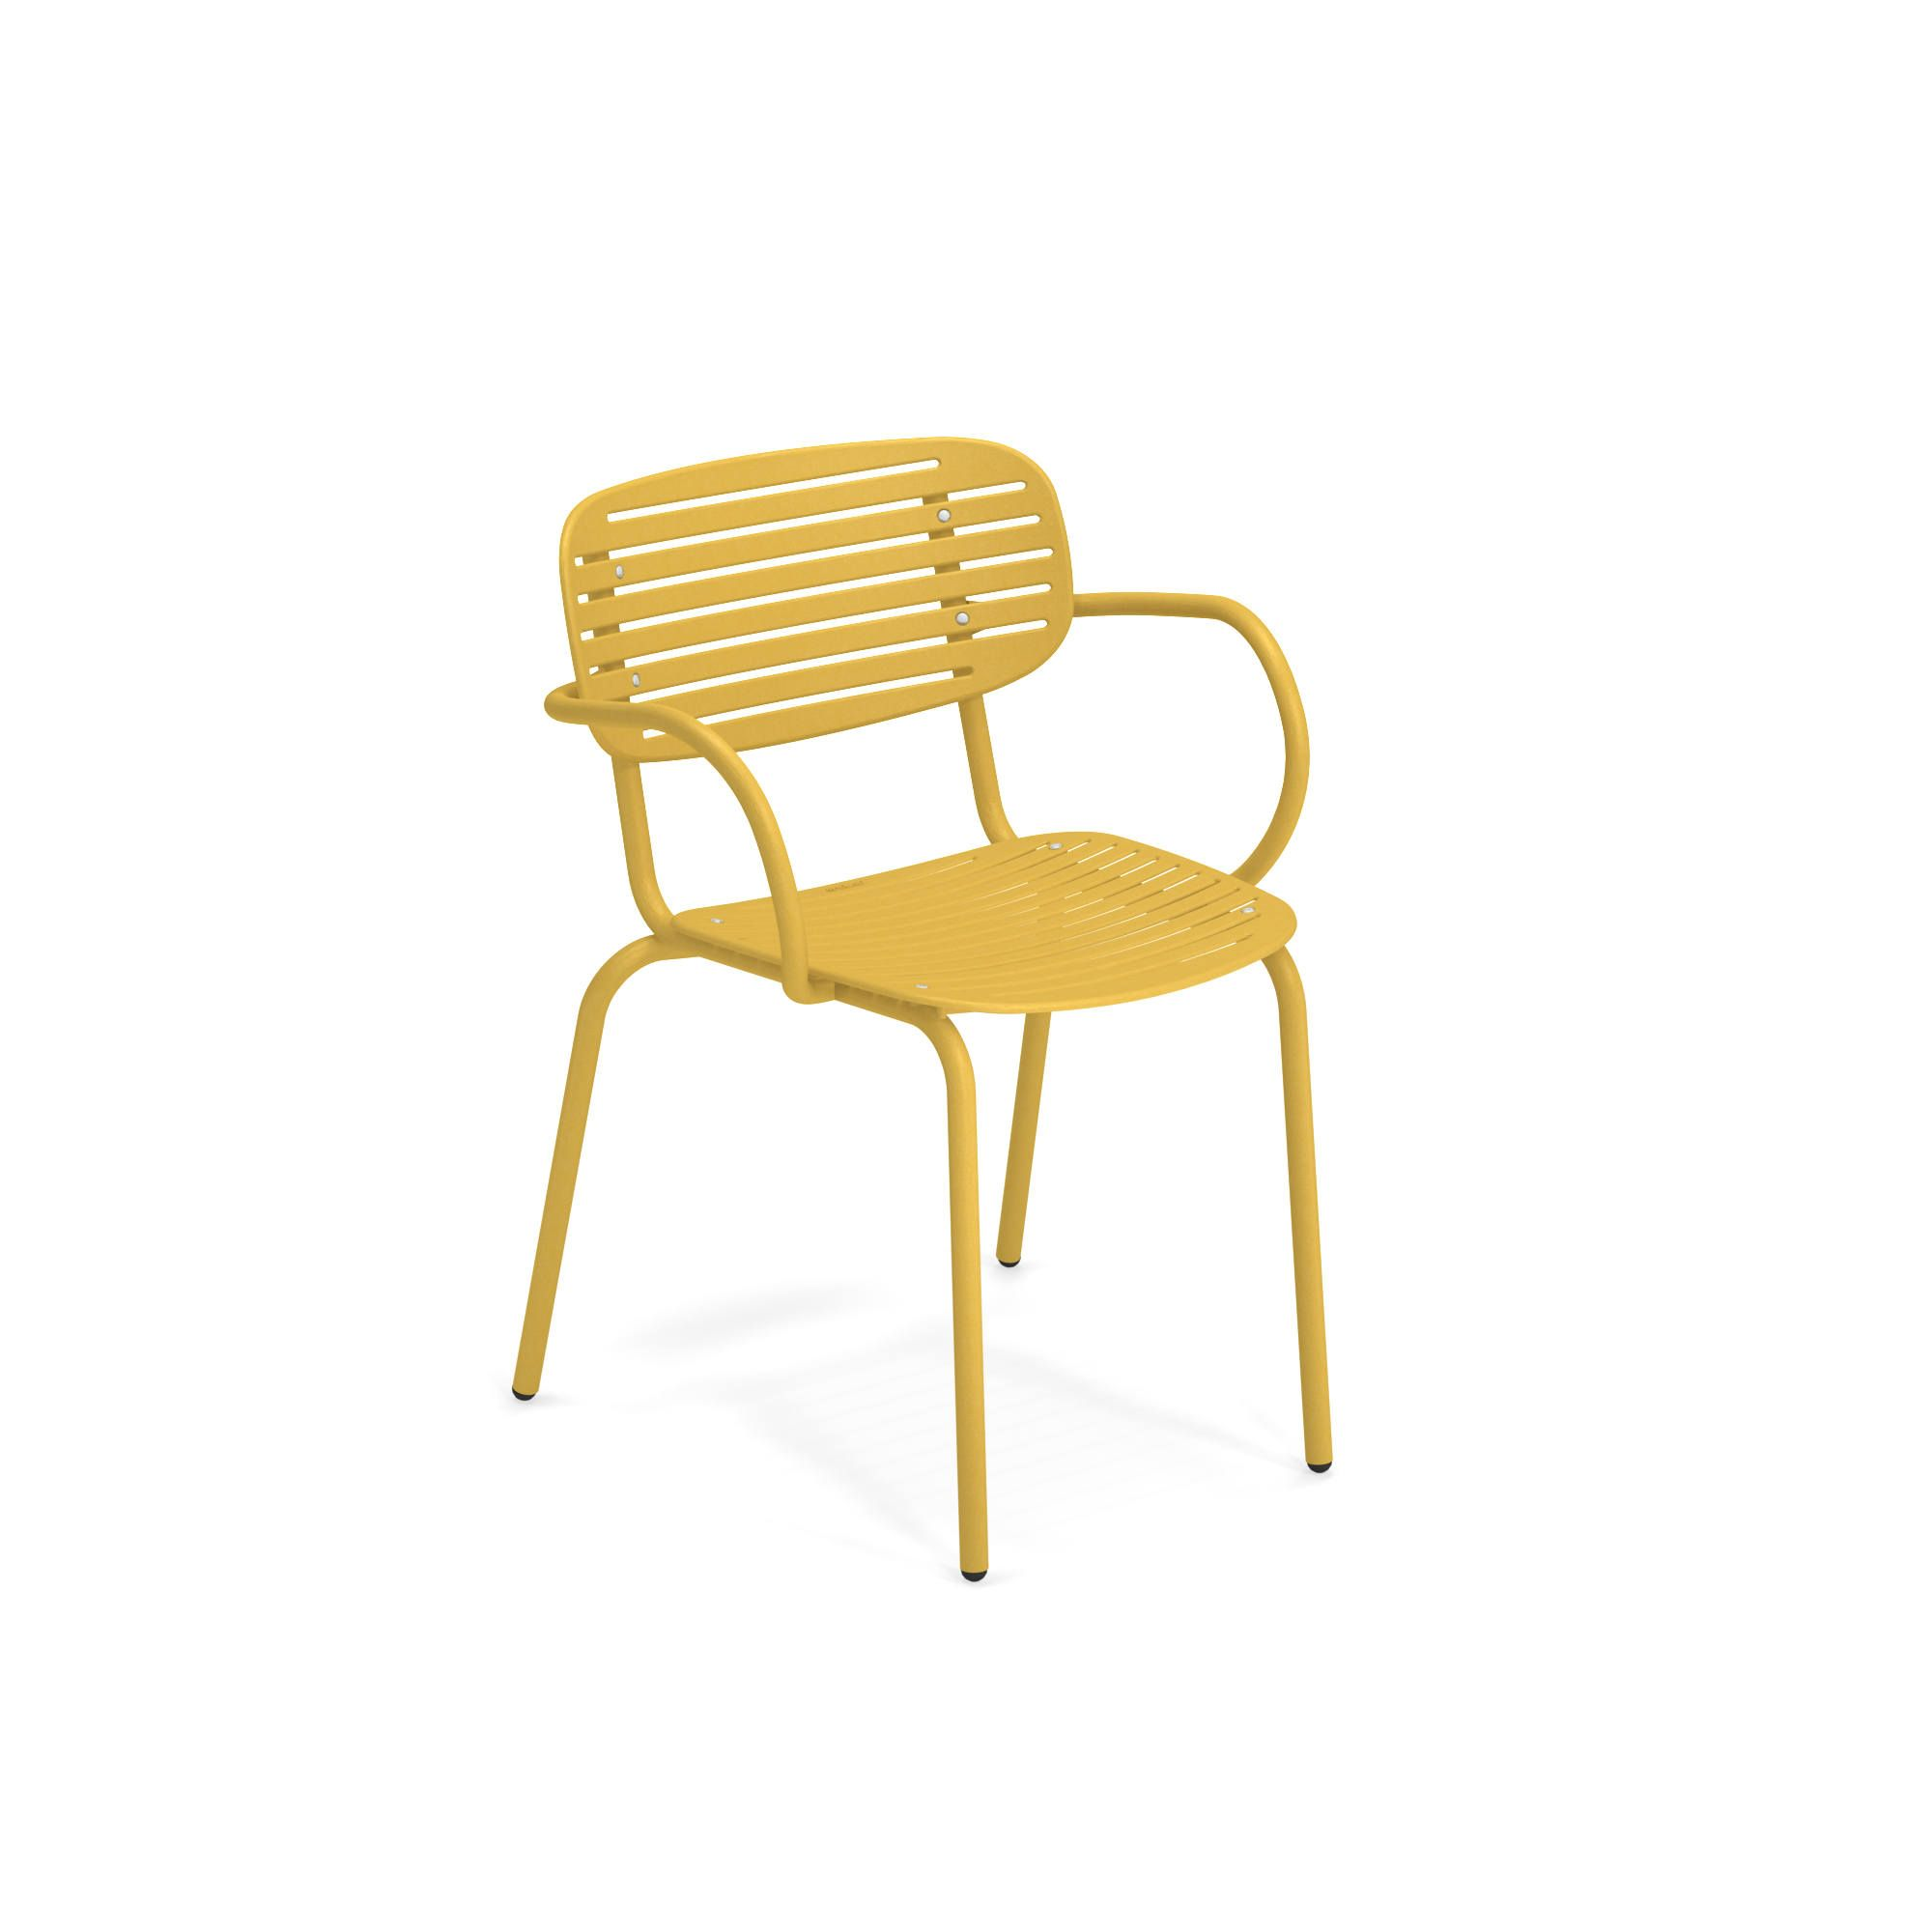 emuamericas, llc 640-62 chair, armchair, stacking, outdoor